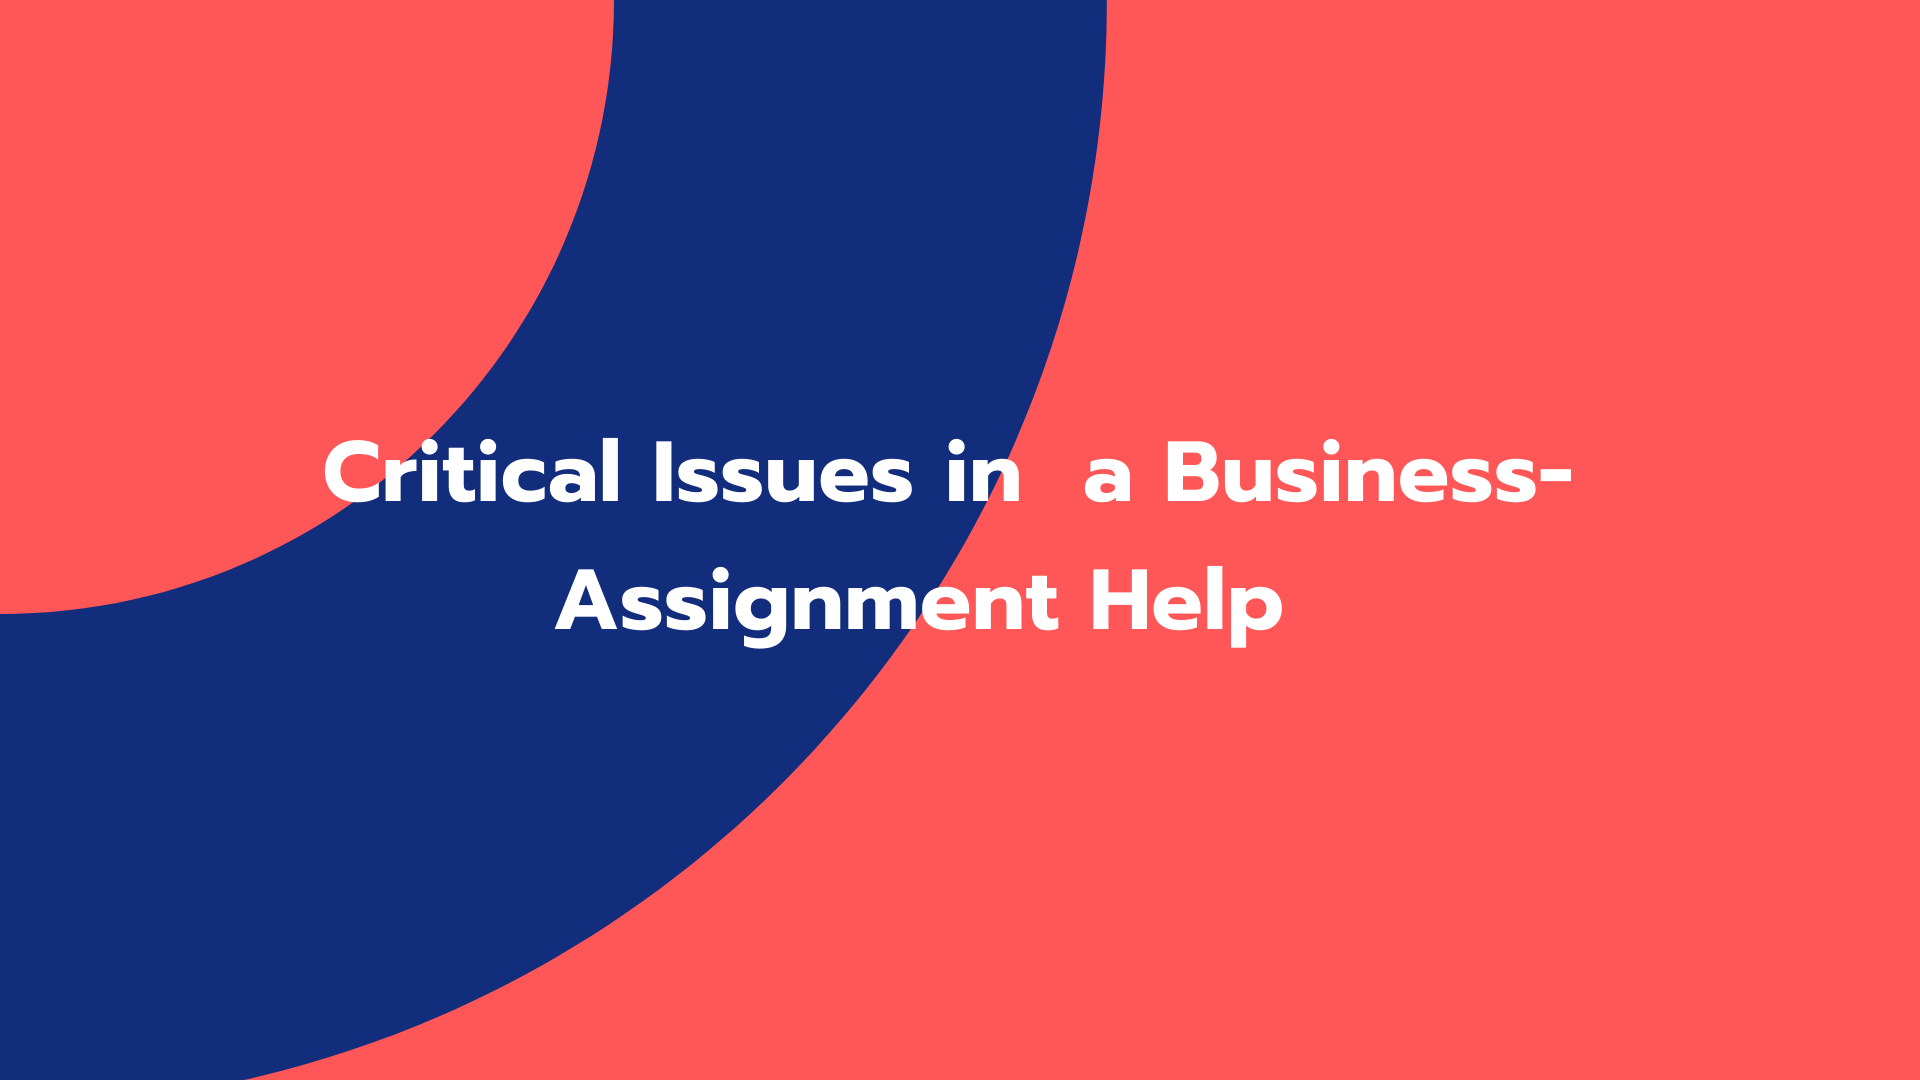 Critical Issues in a Business - Assignment Help